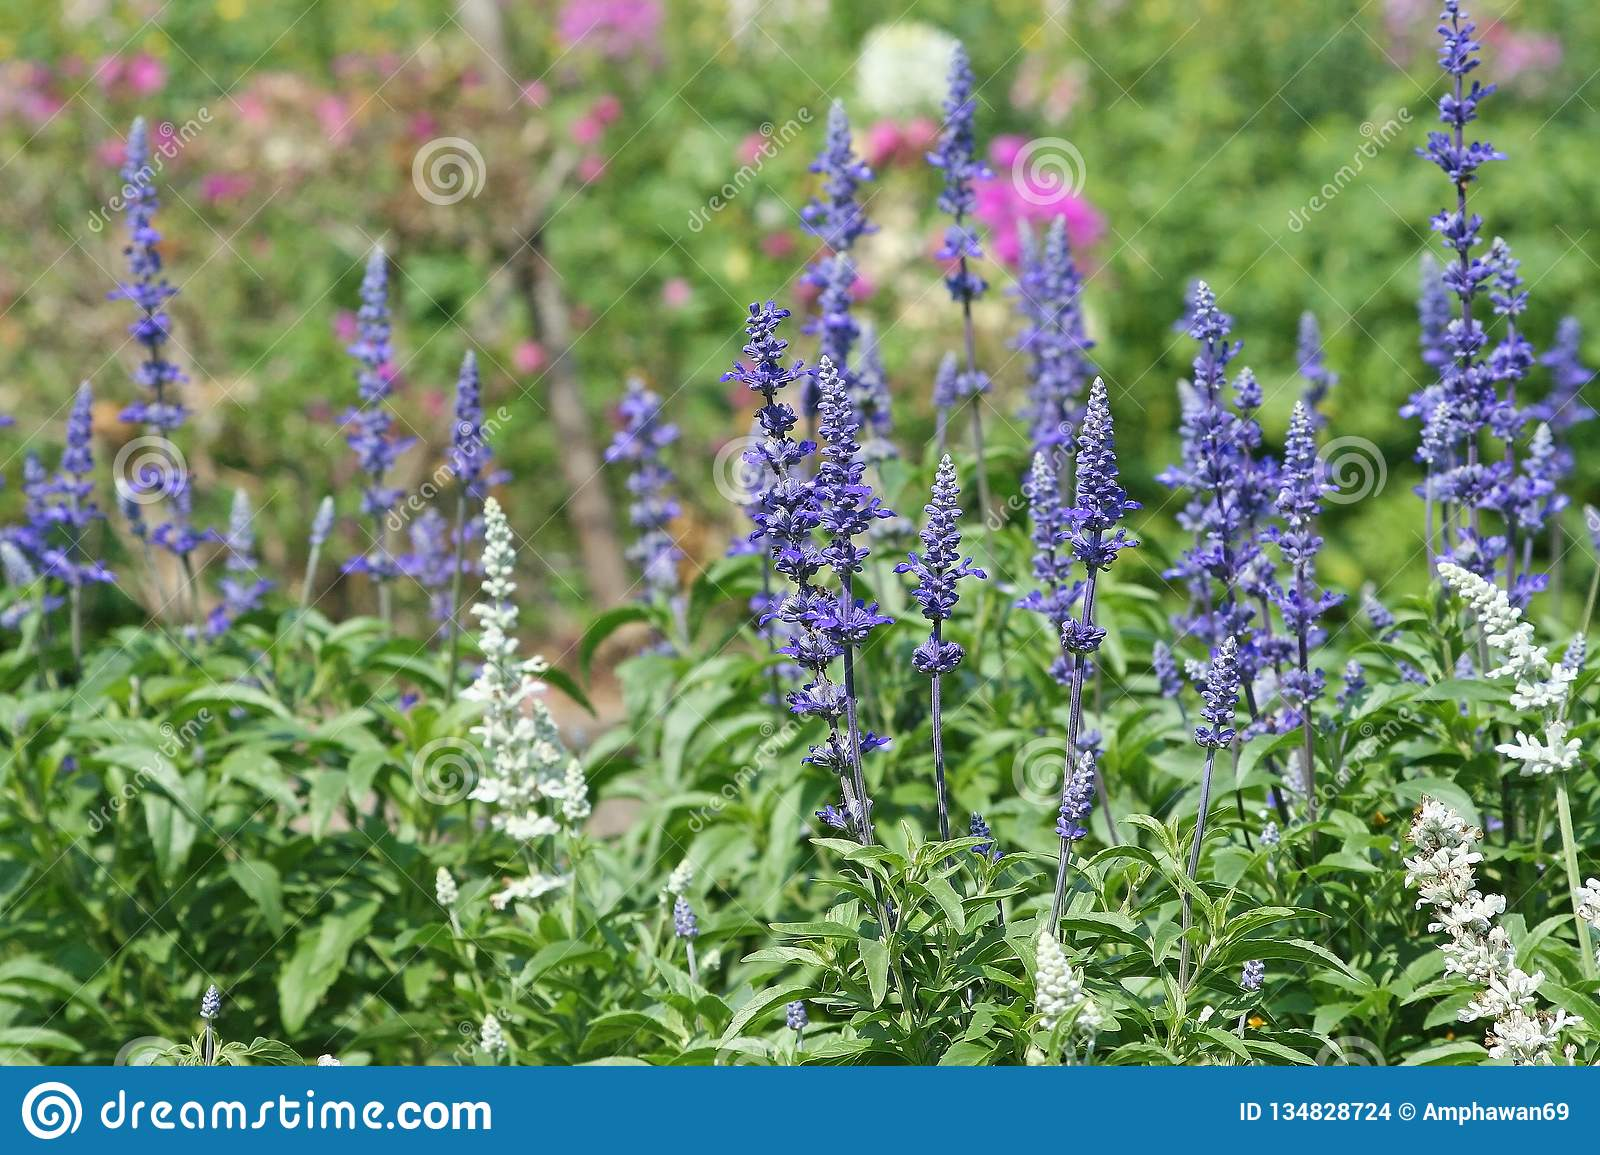 Blue salvia blooming